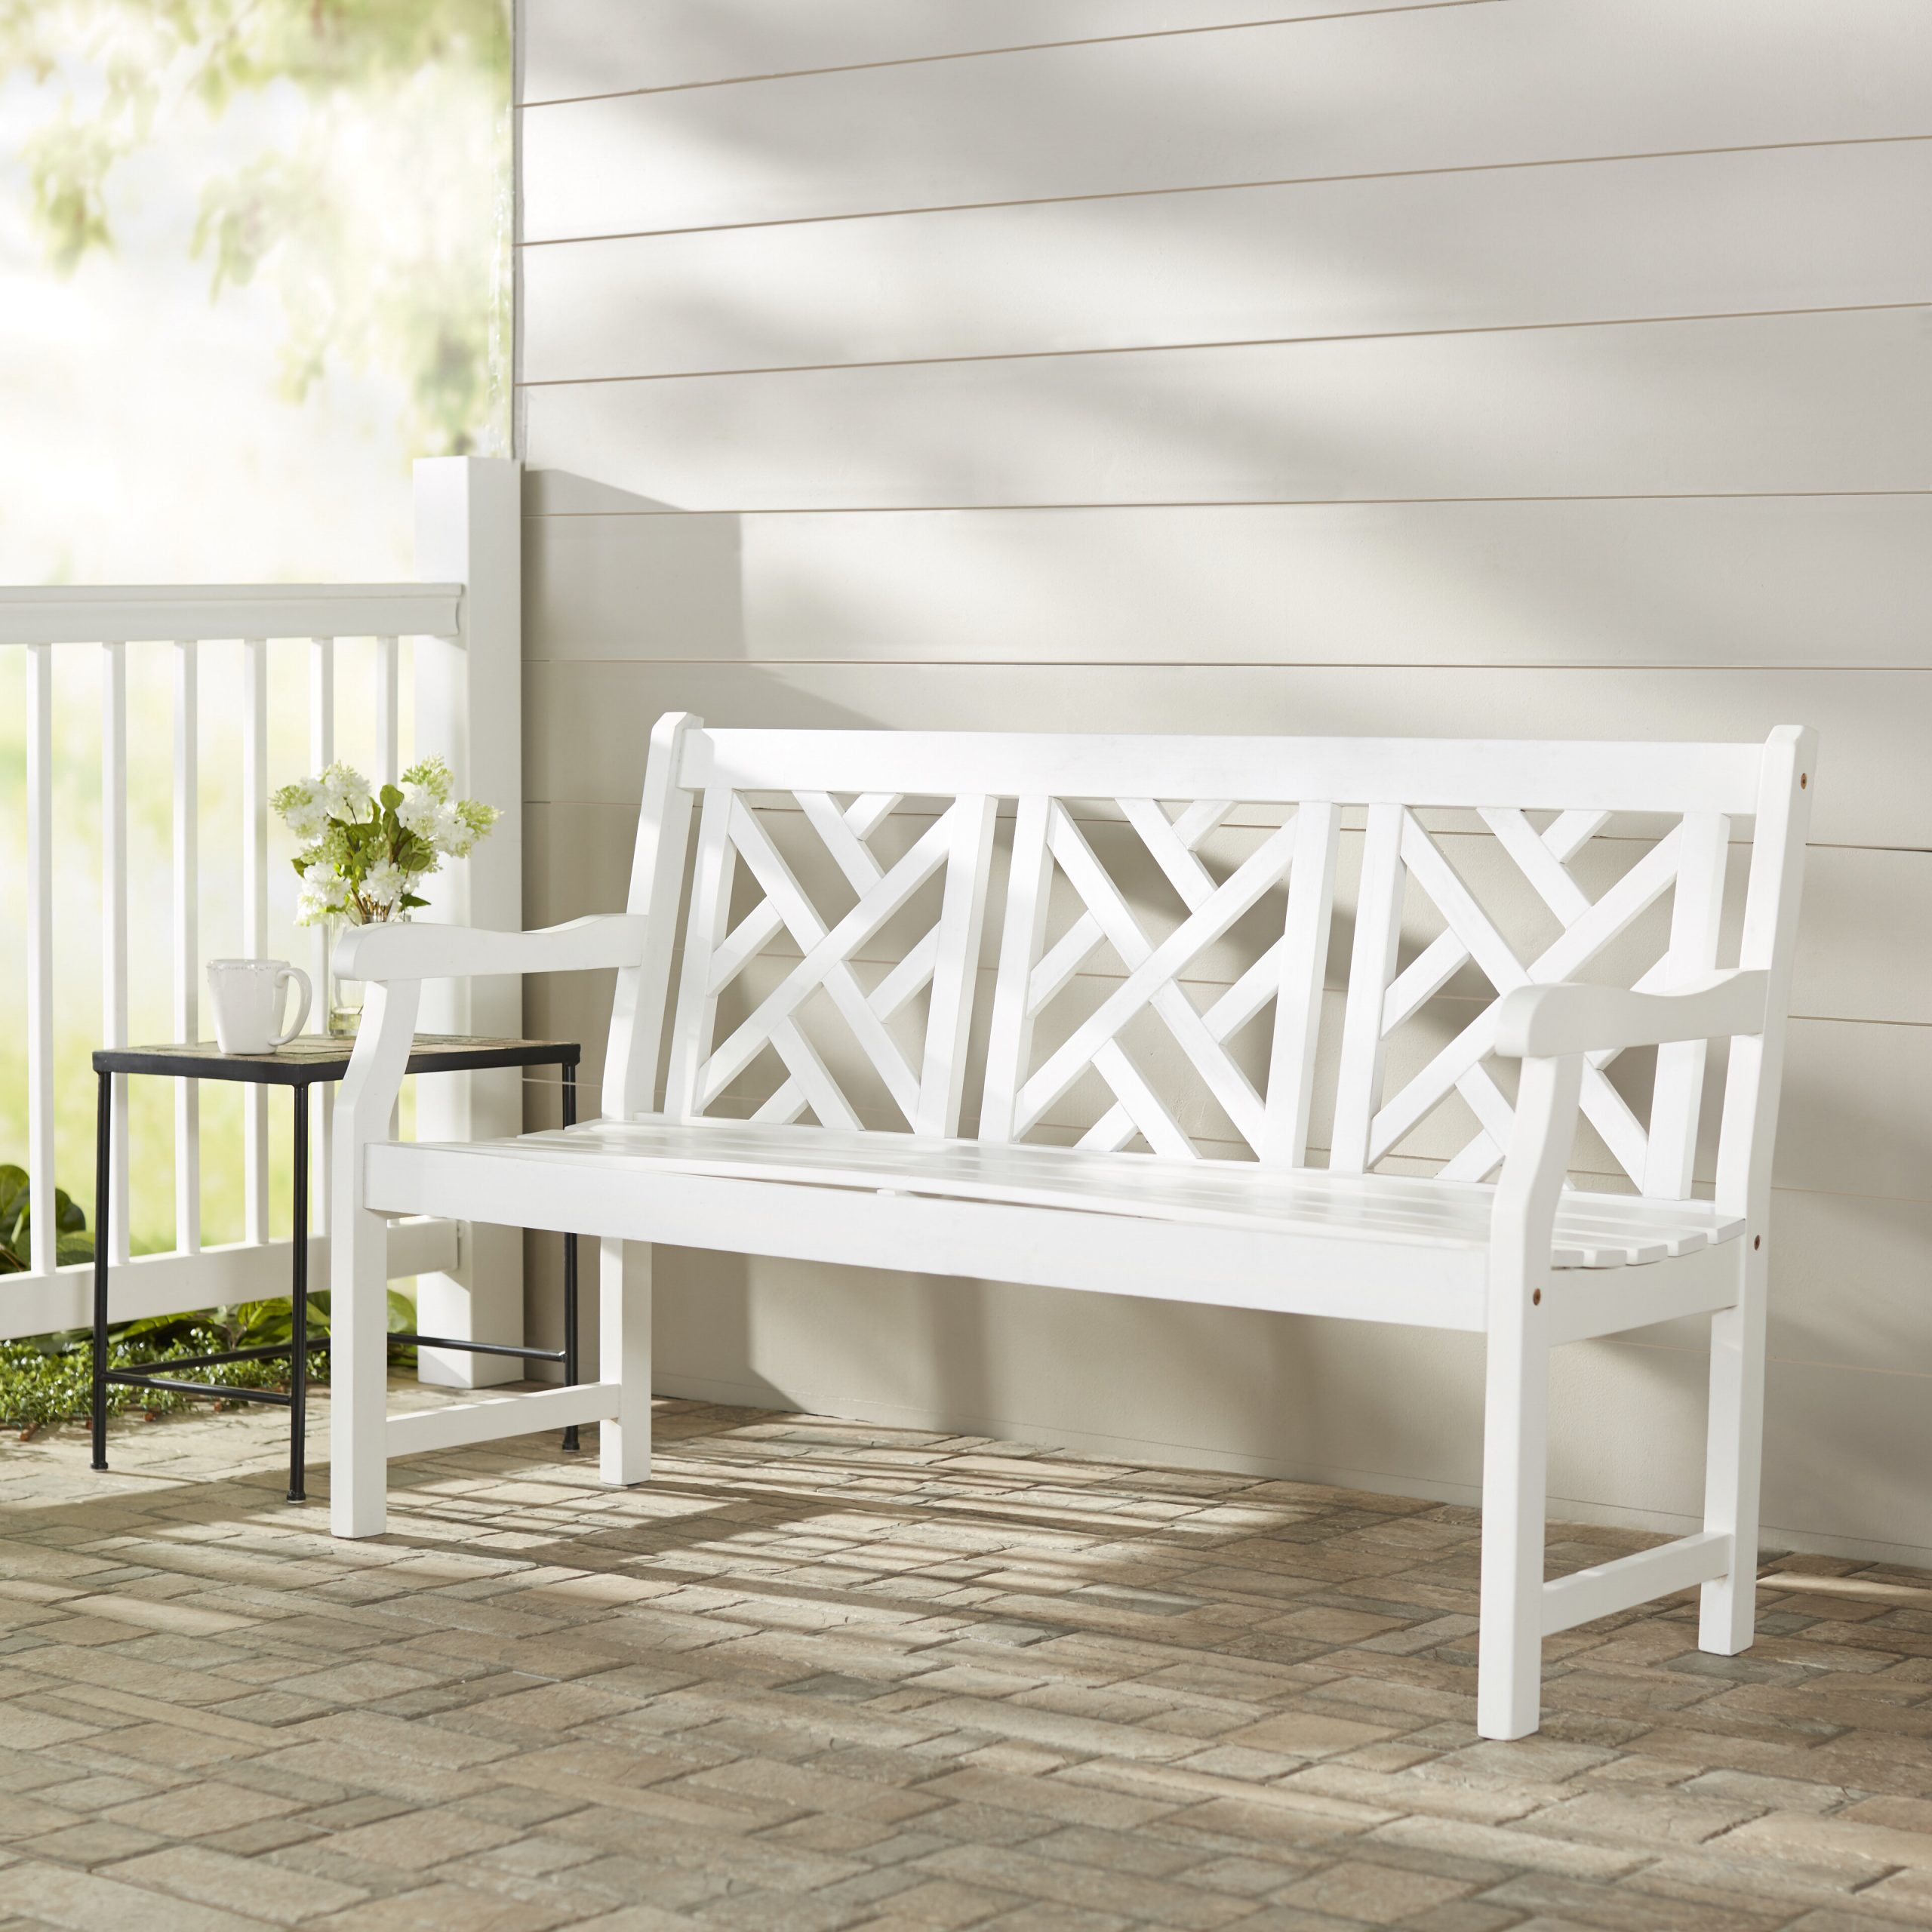 Amabel Wooden Garden Bench With Regard To Amabel Wooden Garden Benches (View 6 of 25)